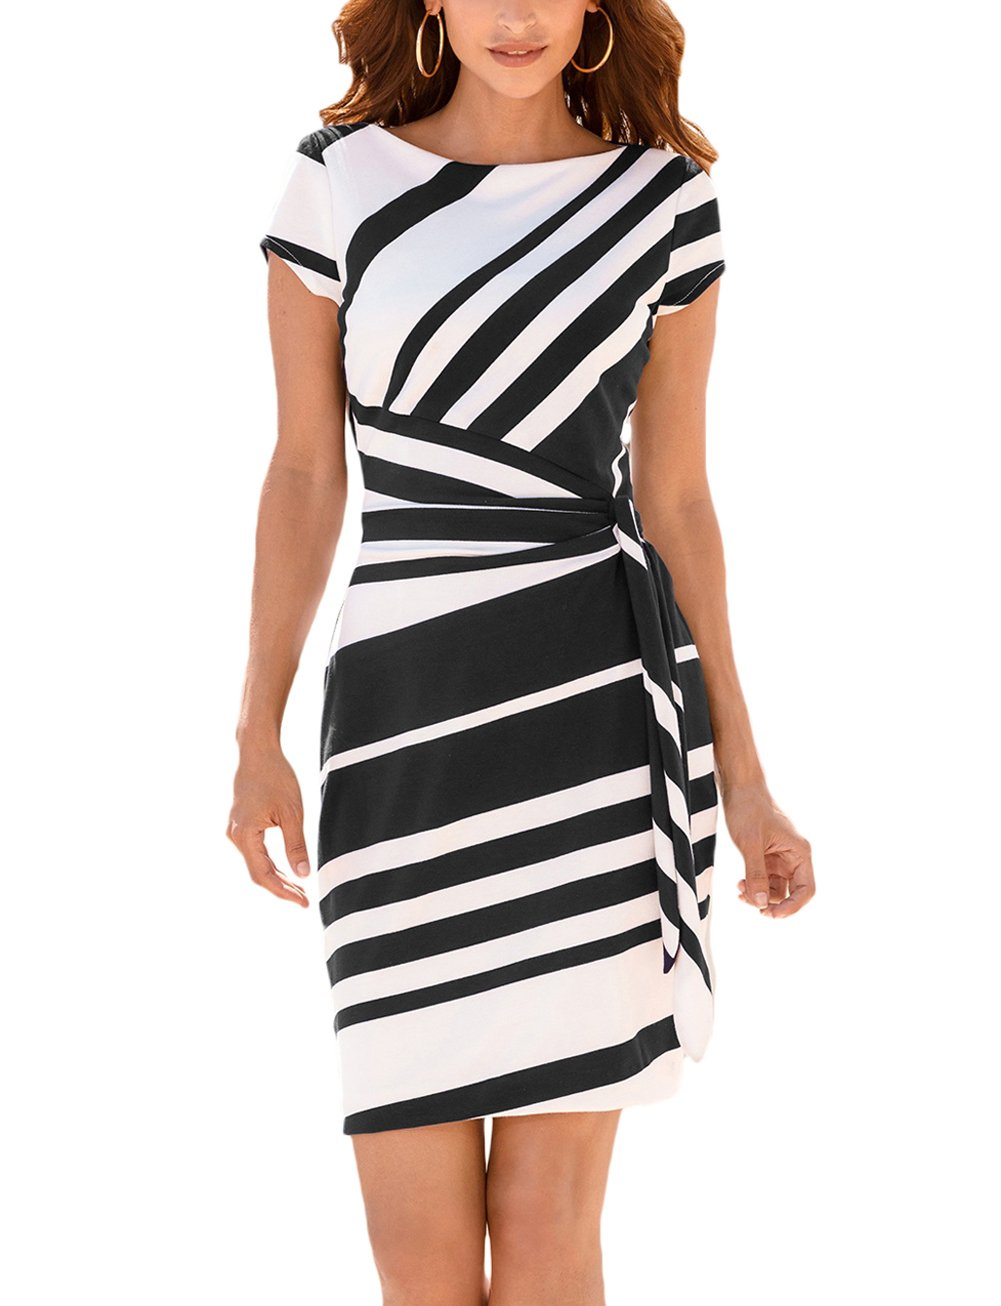 MuCoo Womens Black White Stripe Office Wear to Work Formal Bodycon Sheath Dress M-CA-LC61657